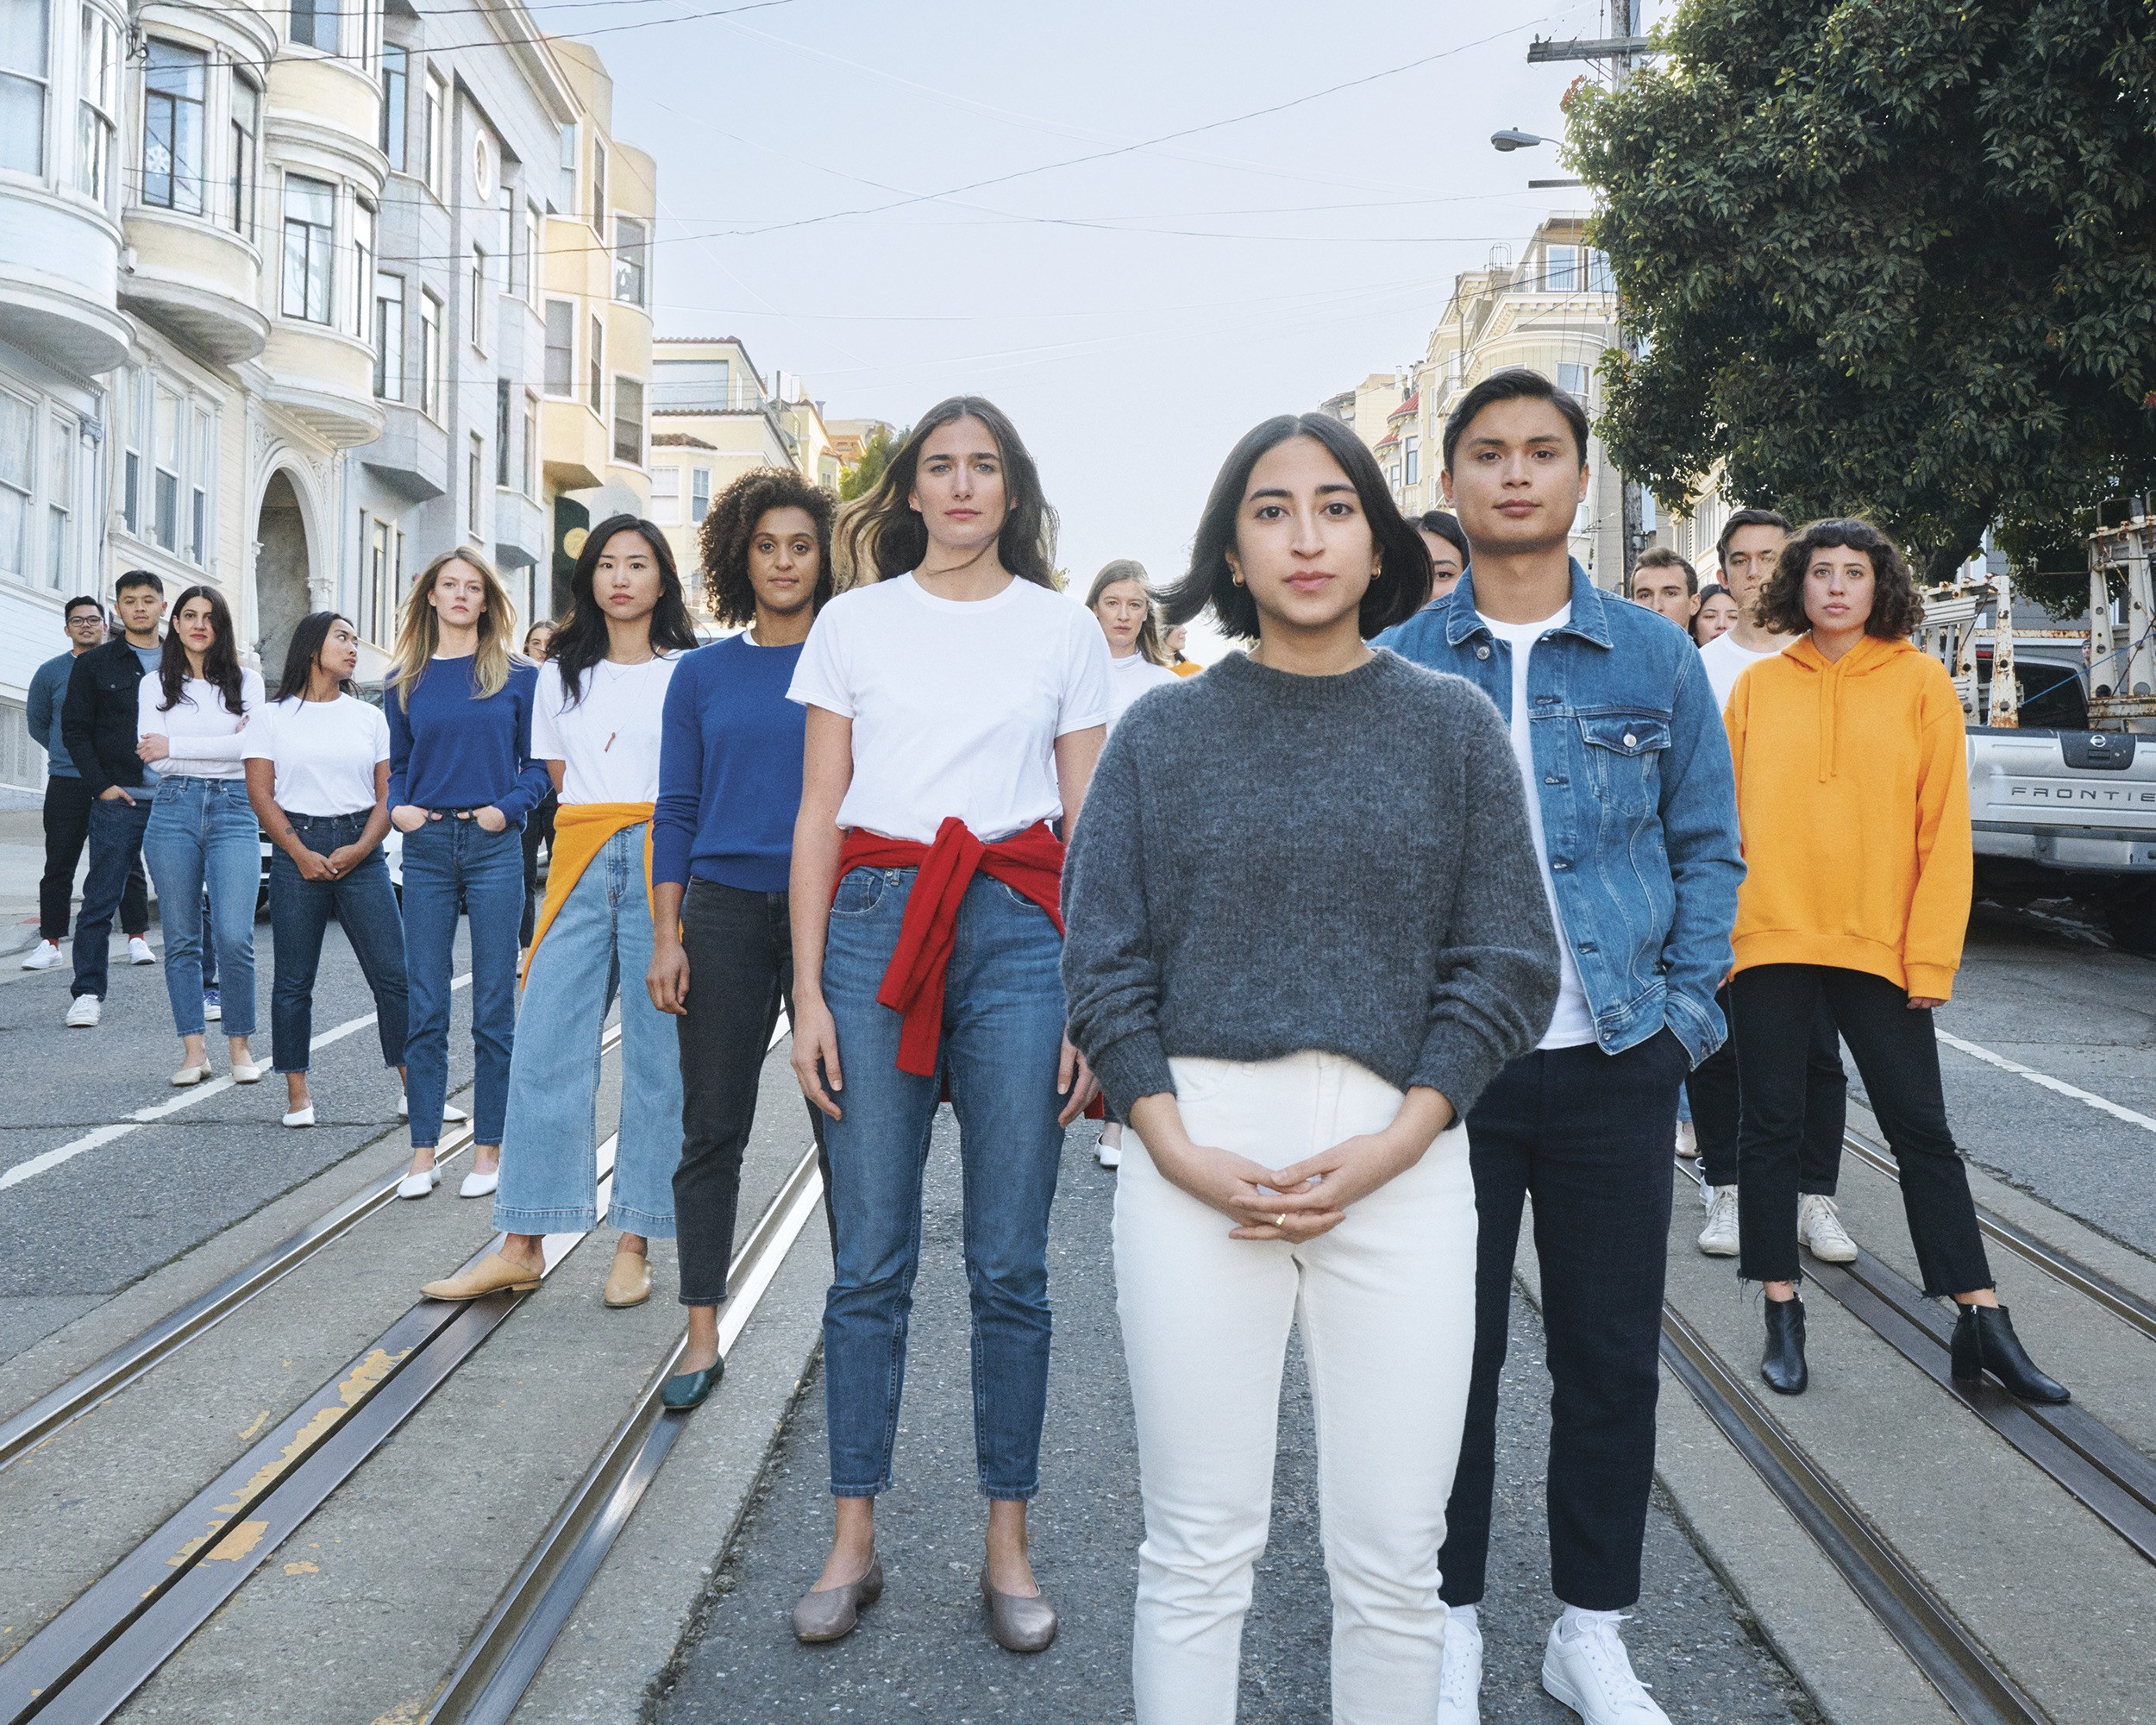 A brand with real soul is Everlane. They are an affordable 'slow' fashion brand. Their brand essence is 'Radical Transparency'. They give a full overview of their supply chain and the associated costs, hence the low prices. This gives them a real edge over competitors. Everlane also gives customers information on where each garment is produced, right down to the maker at the particular factory.